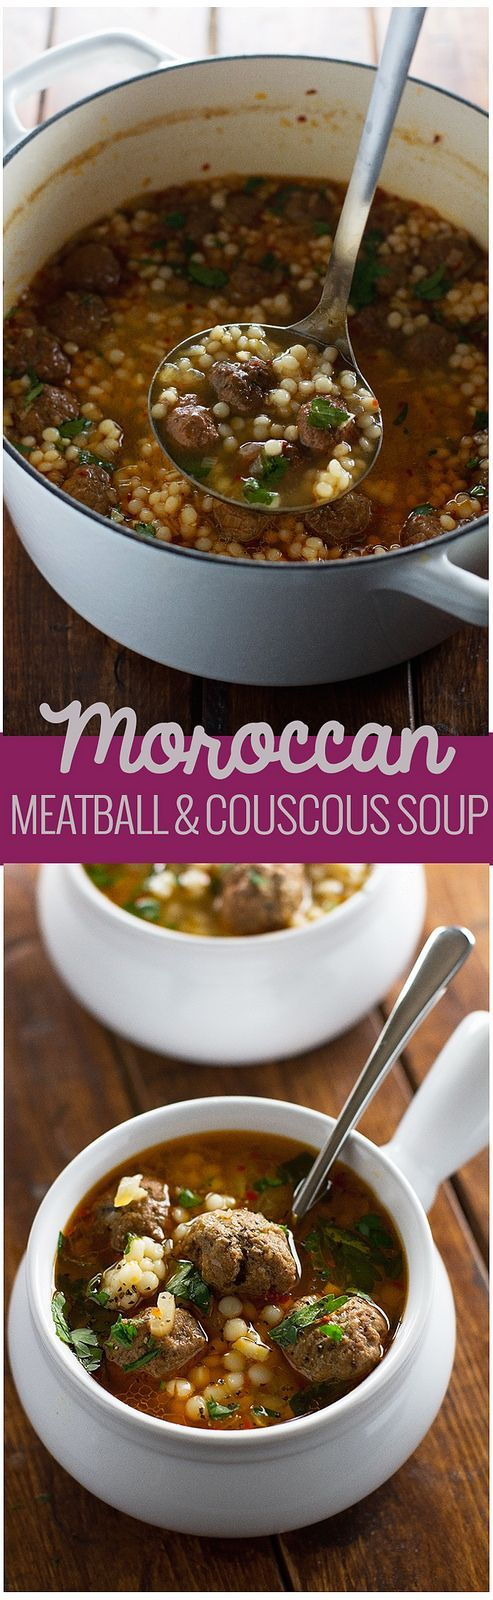 Moroccan Meatball and Couscous Soup